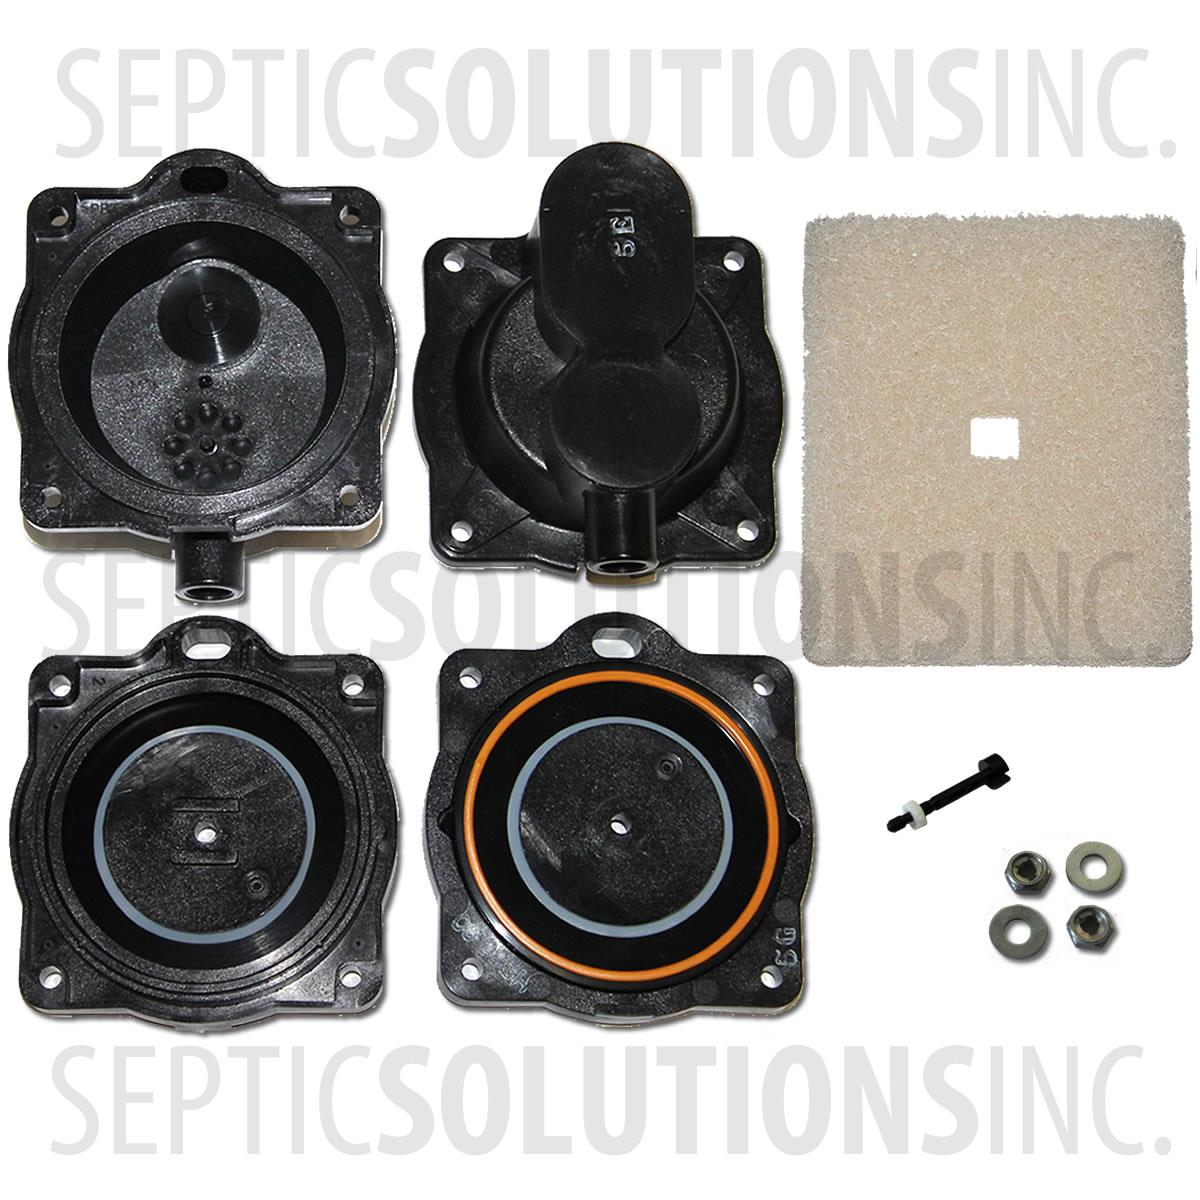 80PC000042_1?w=270 clearstream aerobic septic system air pumps and repair parts  at edmiracle.co